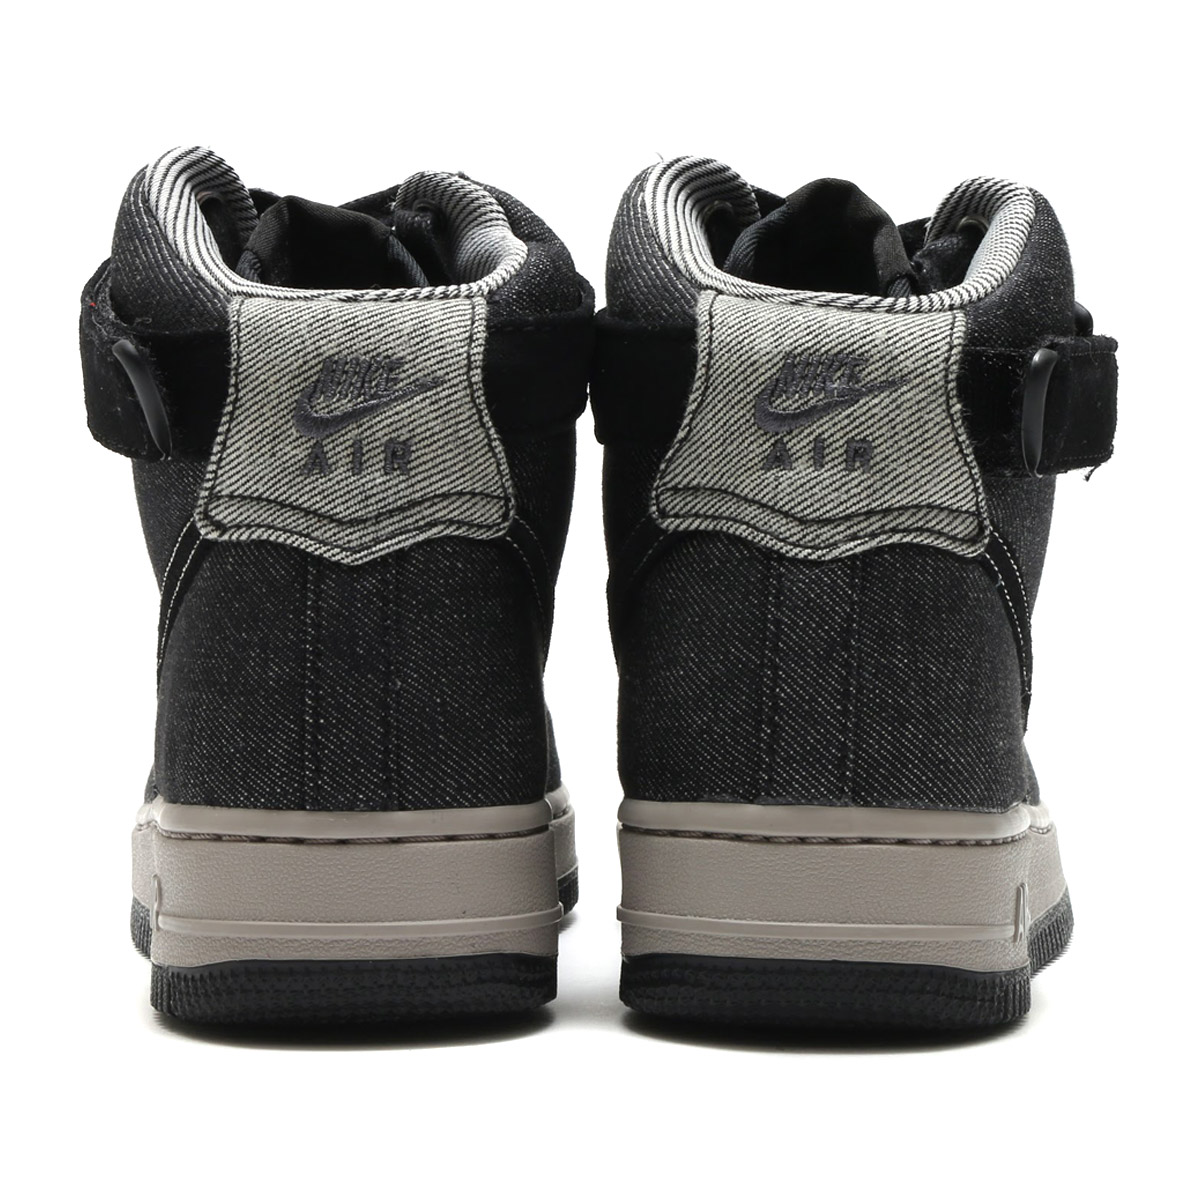 huge discount 164ca e173d NIKE WMNS AIR FORCE 1 HI SE (Nike women air force 1 HI SE) (BLACK DARK GREY- COBBLESTONE) 17FA-S